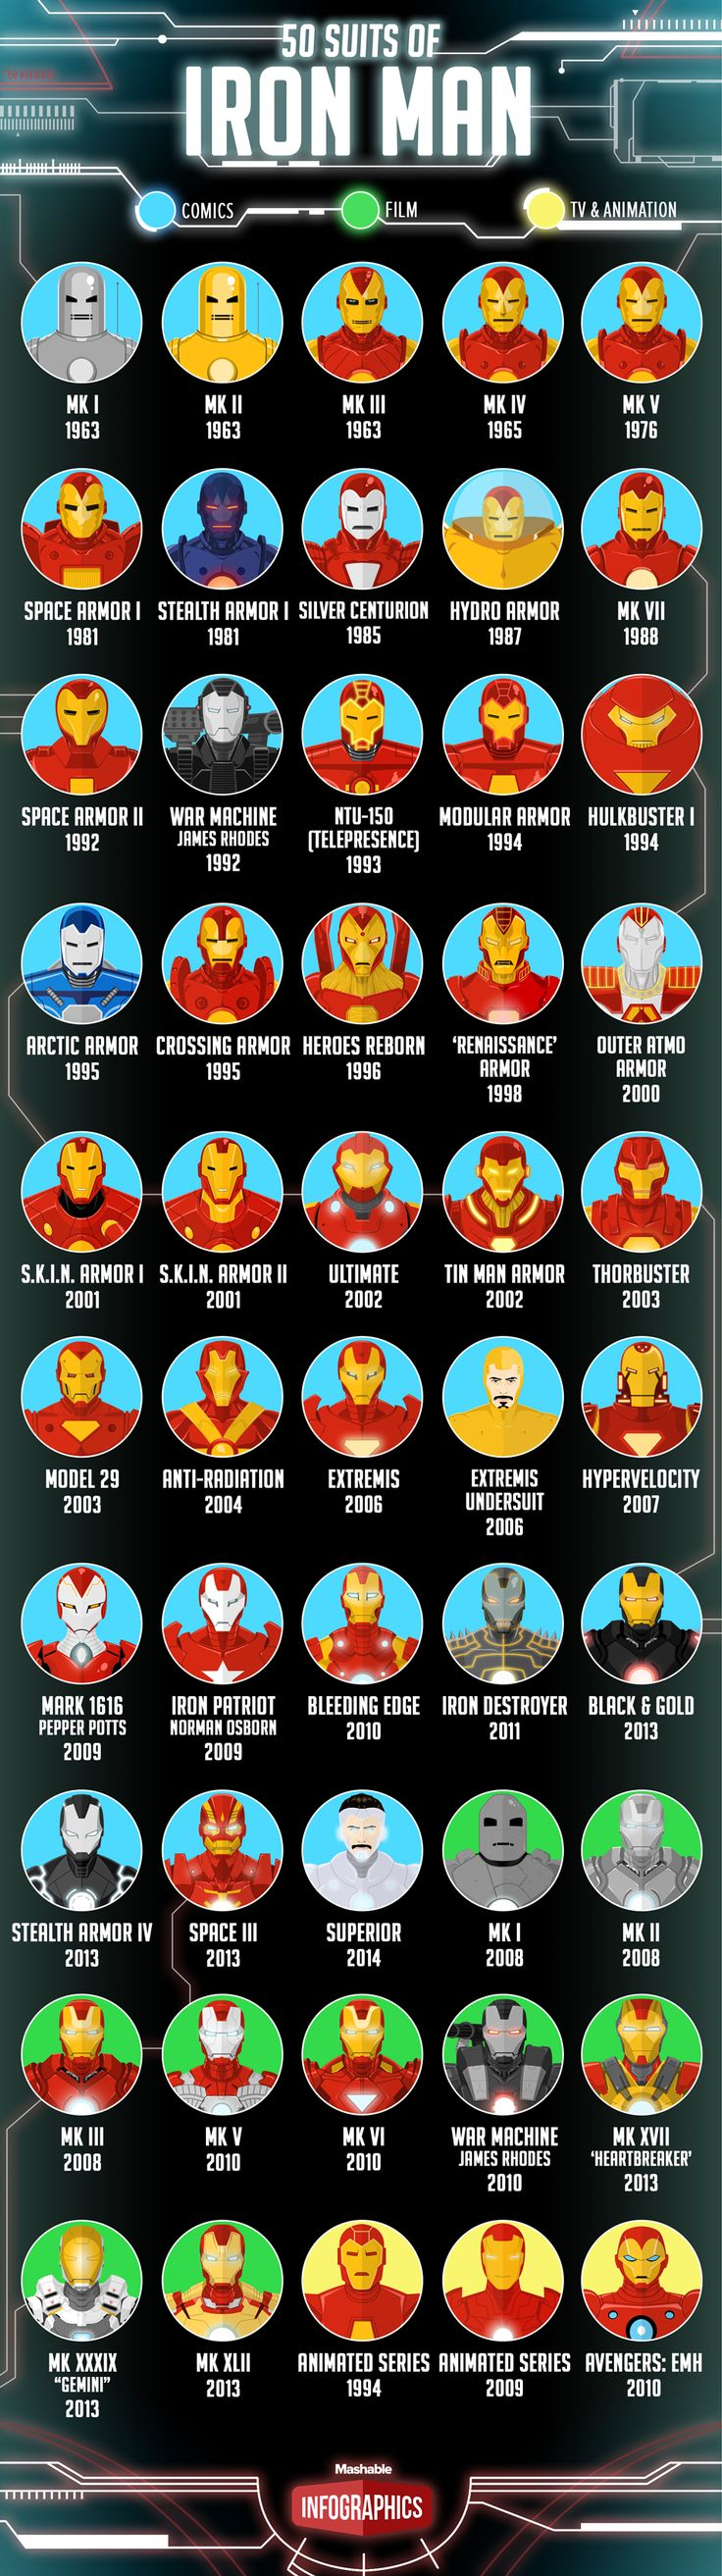 50 of Iron Man's suits from over the years (not an inclusive set, but awesome). #IronMan #Avengers